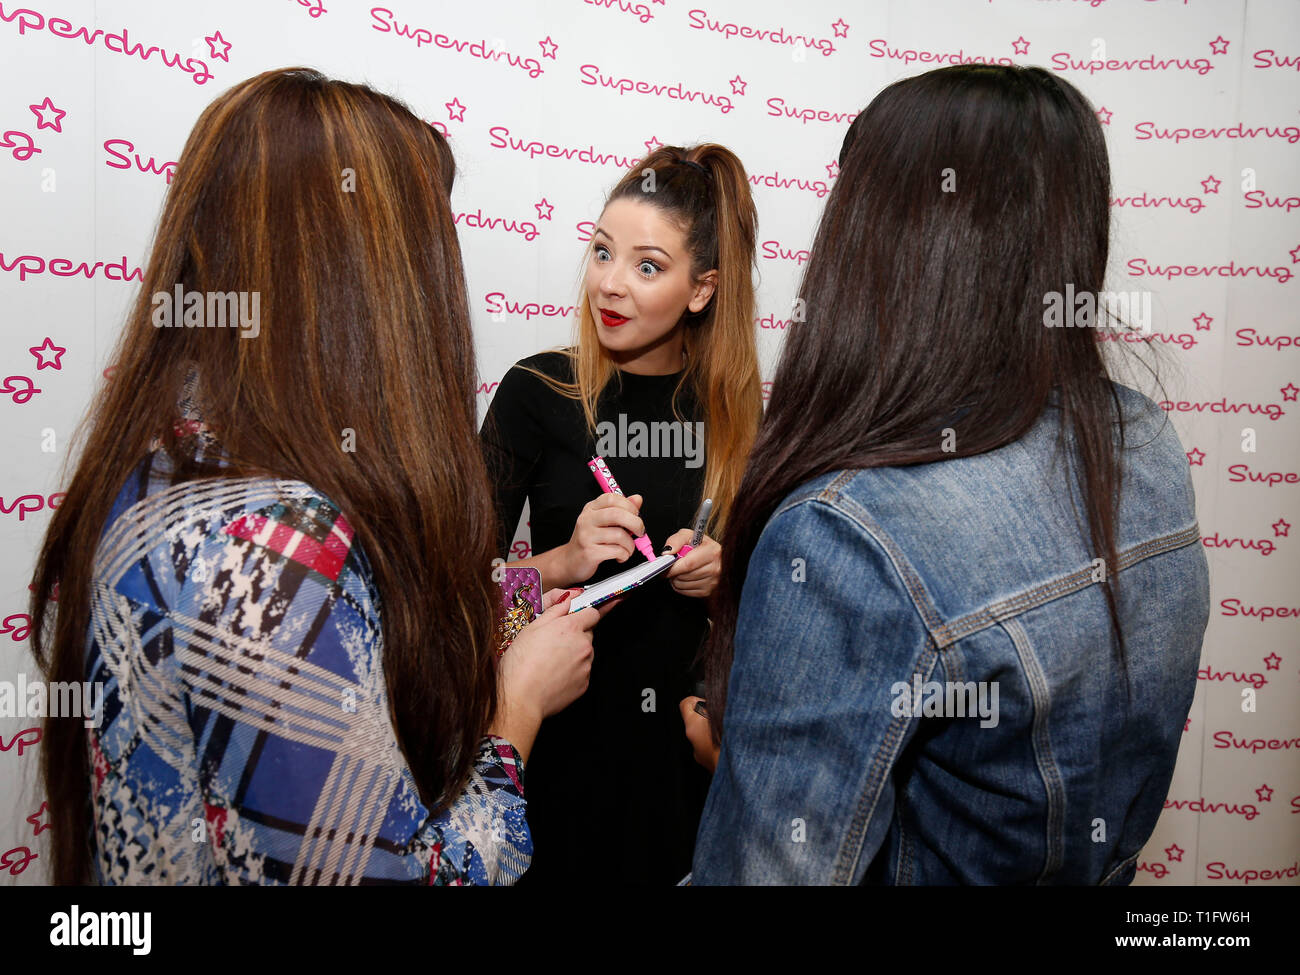 Vlogger and internet personality Zoe Suggs aka Zoella meets fans at Superdrug's store in Churchill Square in Brighton 30 October 2014 - Stock Image